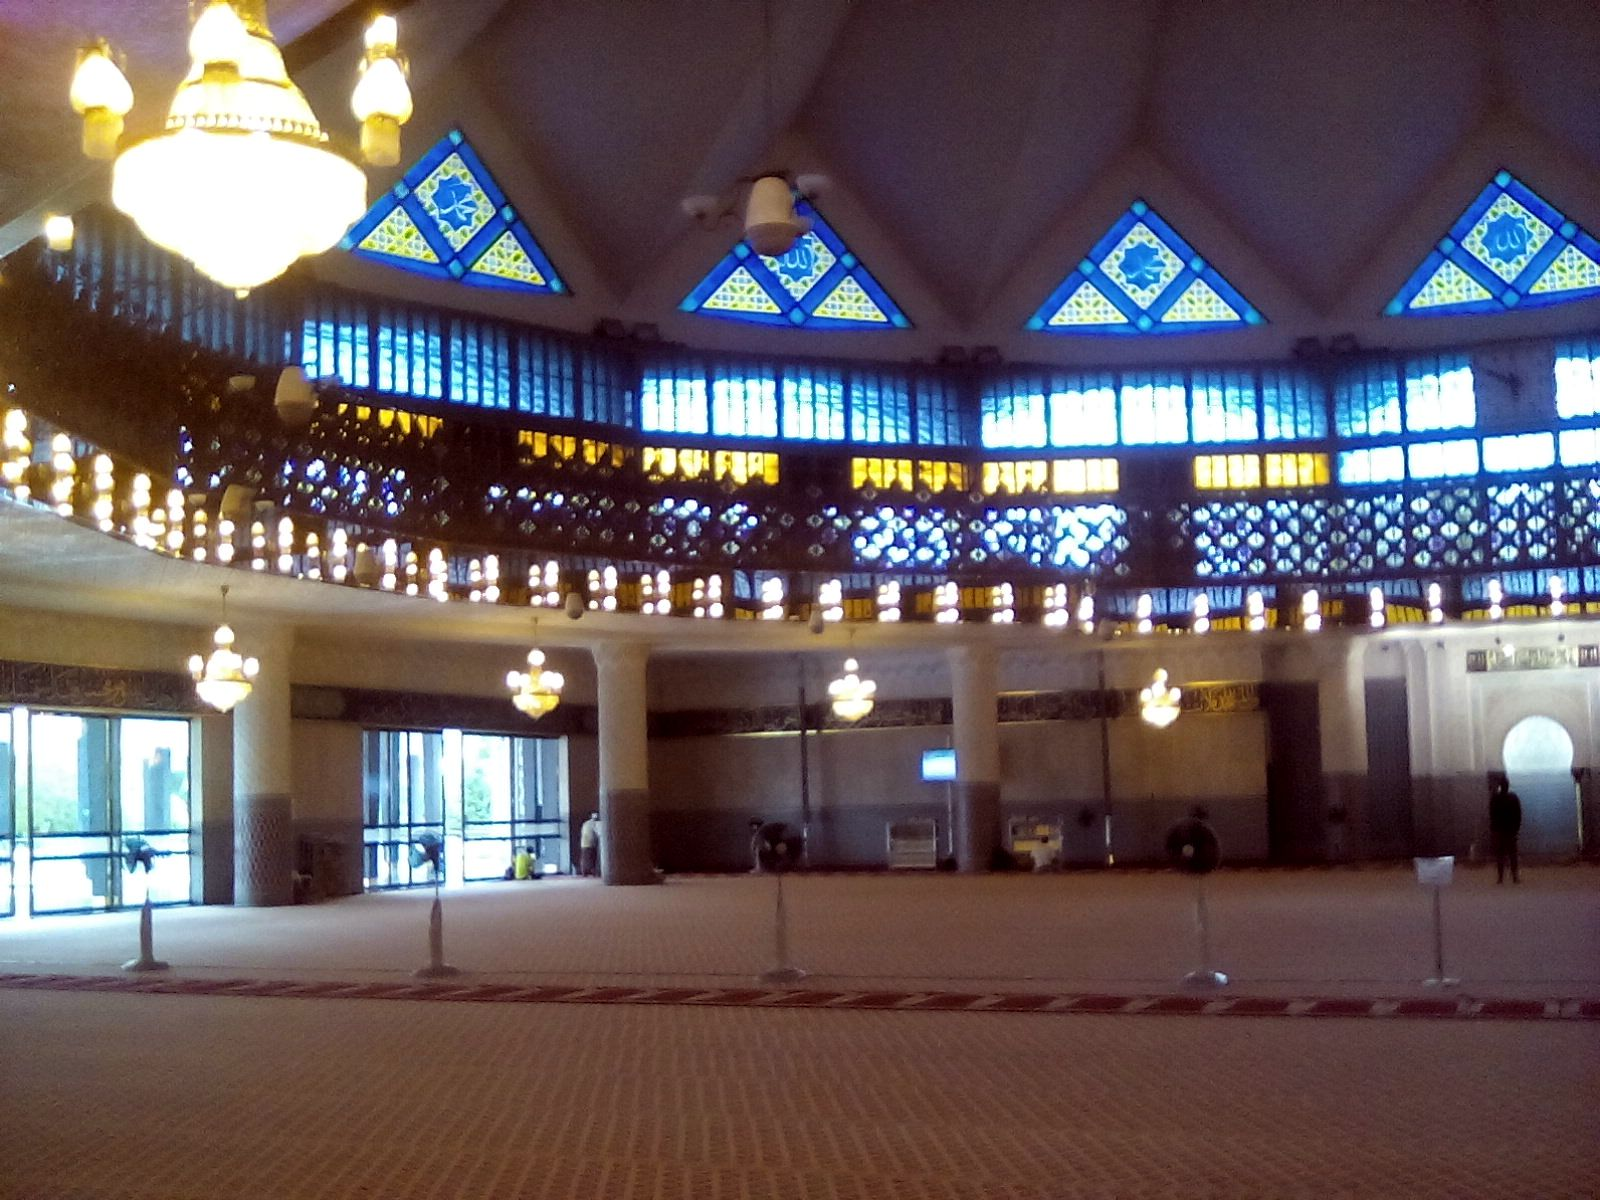 mosquee nationale salle de priere kuala lumpur